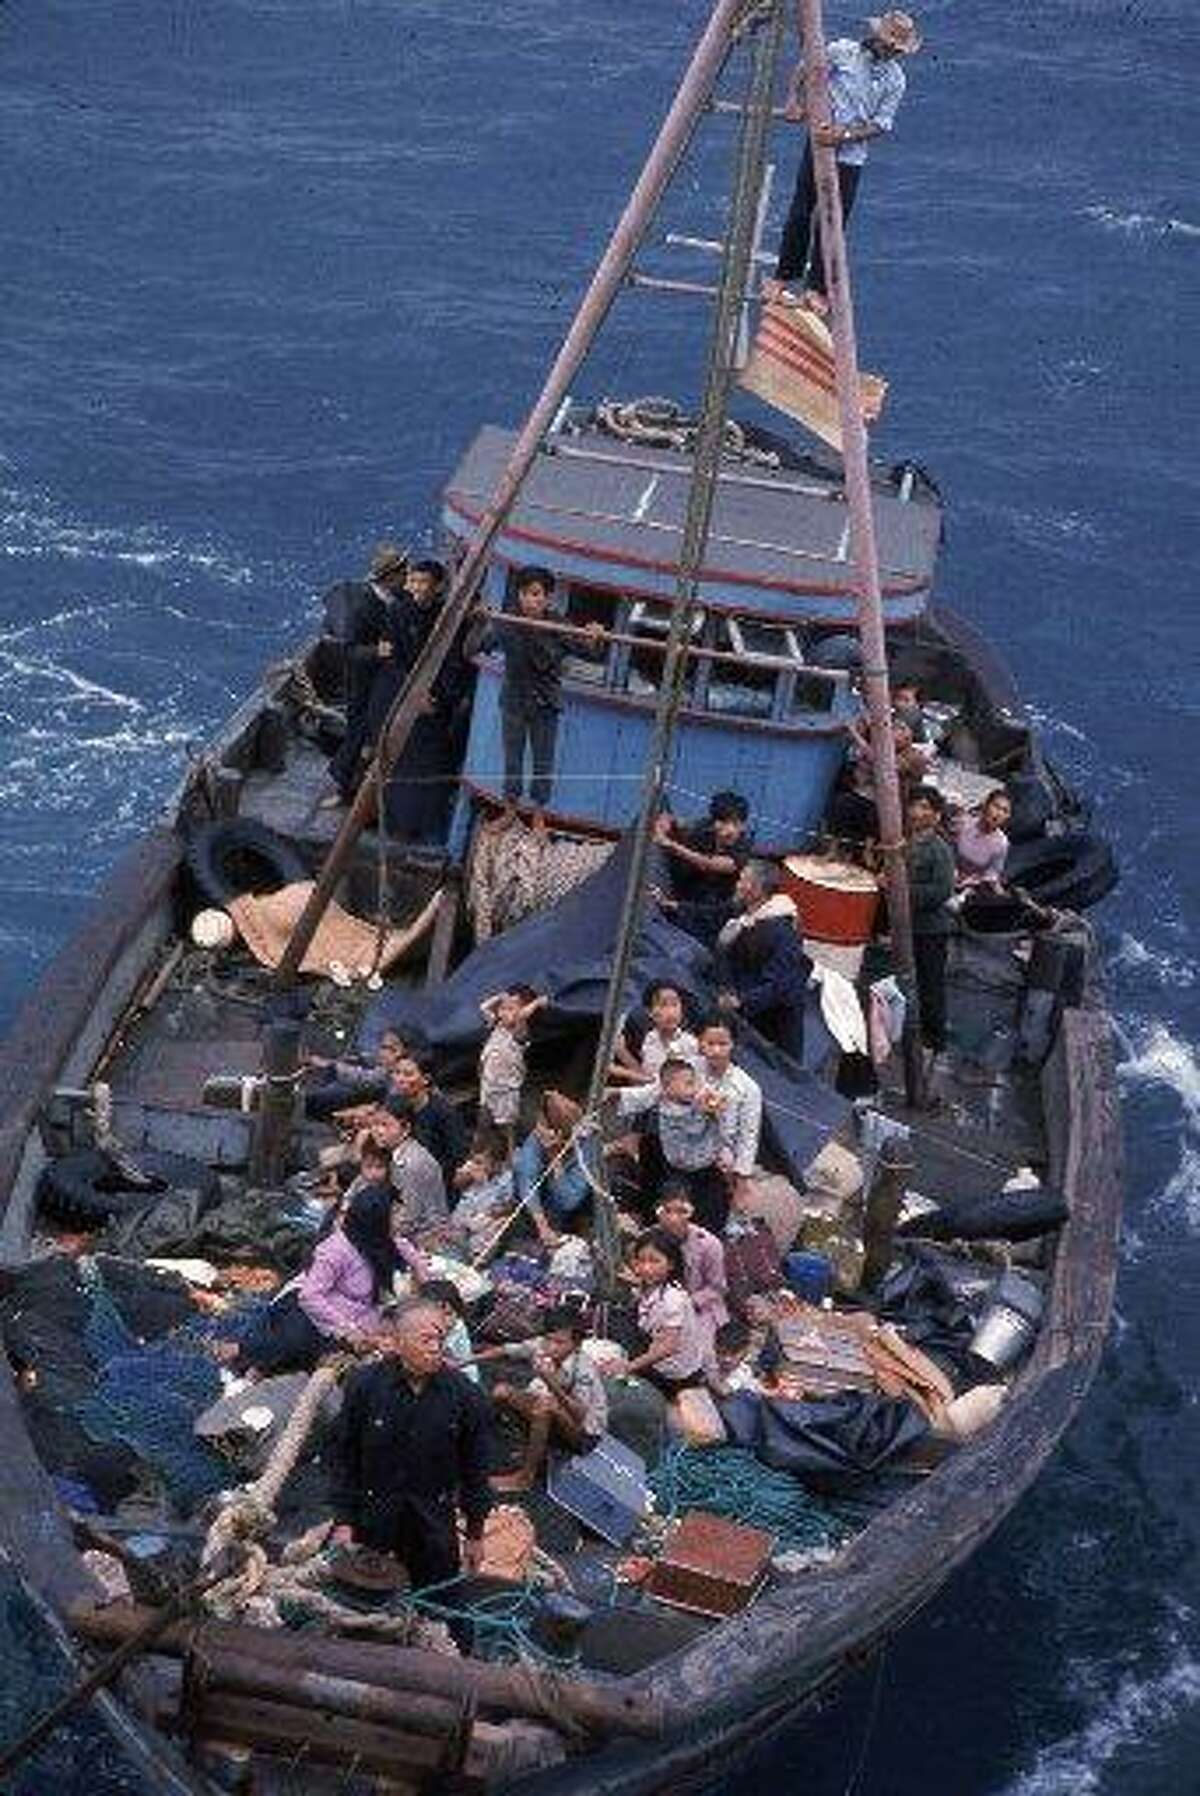 South Vietnamese refugees approach a U.S. war ship to seek refuge from the invading force from the North April 1975 in the South China Sea near Saigon. American involvement in the Vietnam War came to an end when troops from communist North Vietnam invaded Saigon, the capital of the Republic of Vietnam in the South.